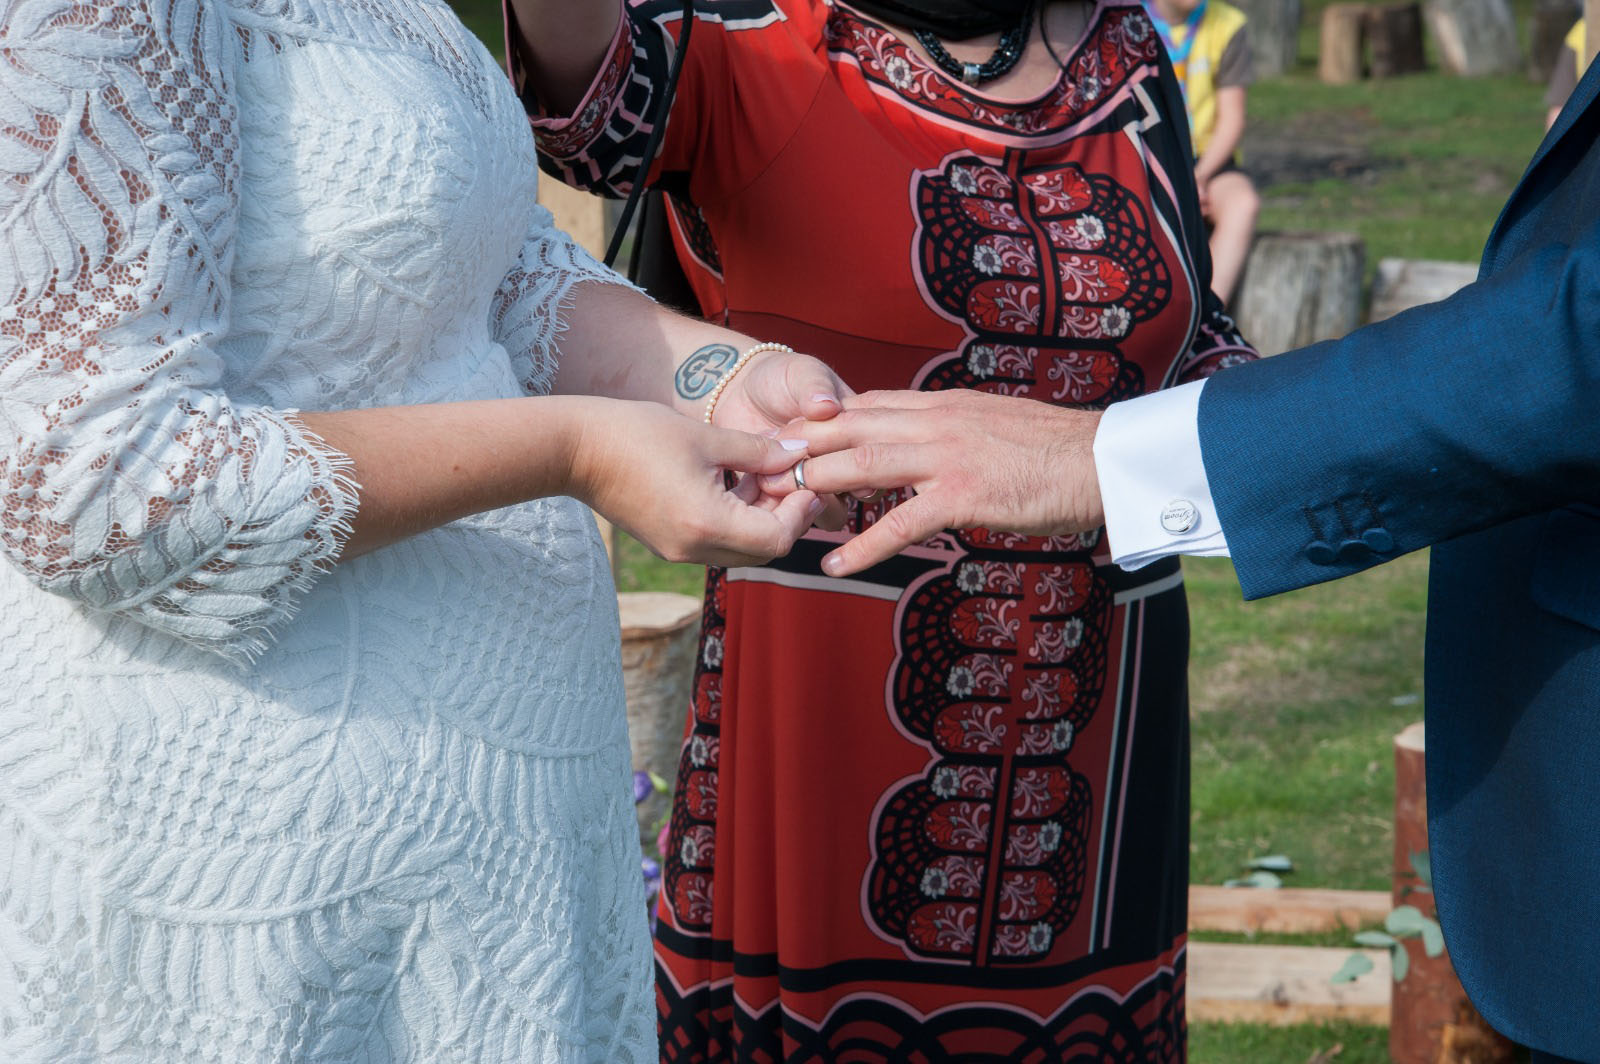 Celebrant officiating a multicultural wedding